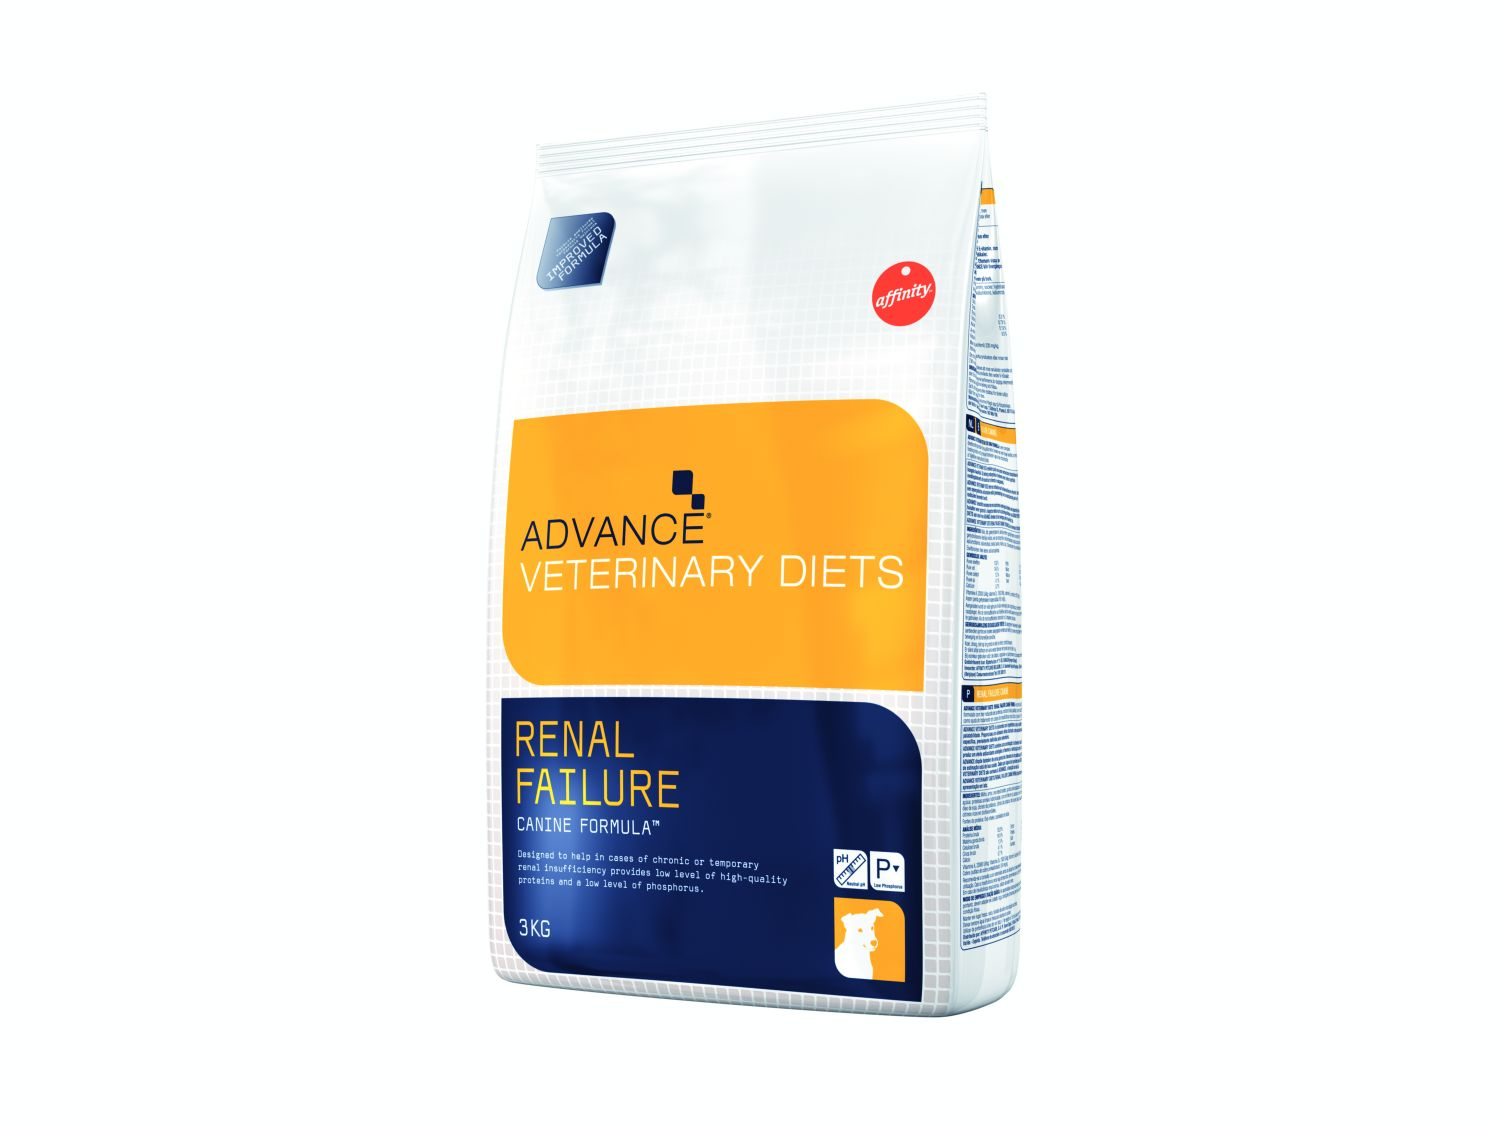 Advance Veterinary Diets Renal Failure - Hund & Niereninsuffizienz